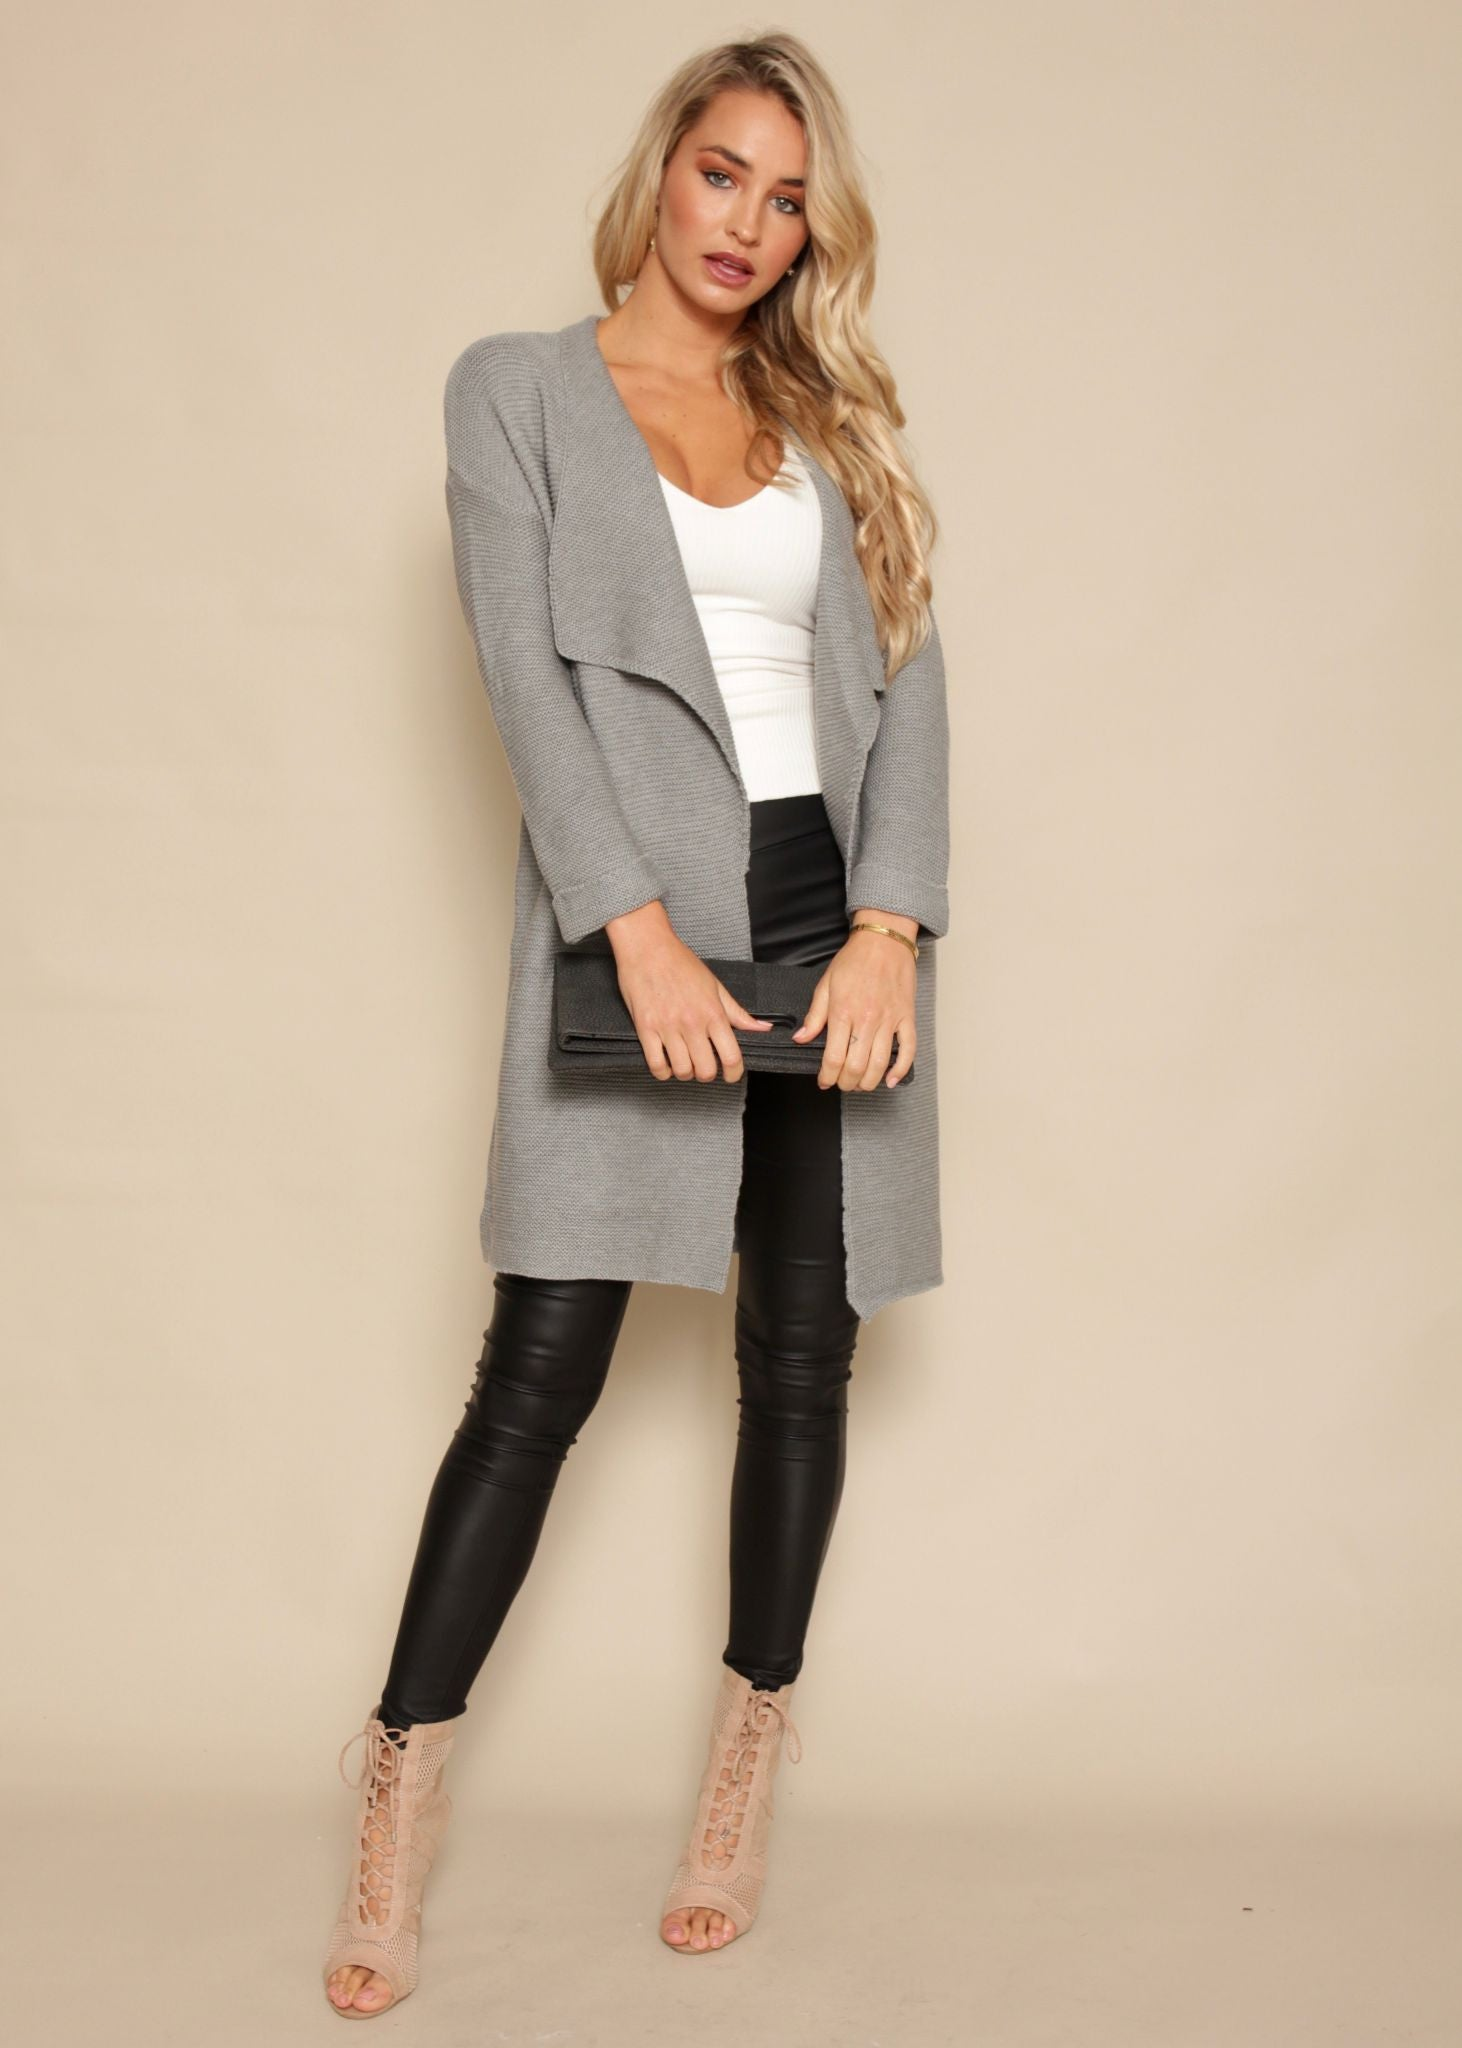 Lover Of Mine Knit Cardigan - Grey